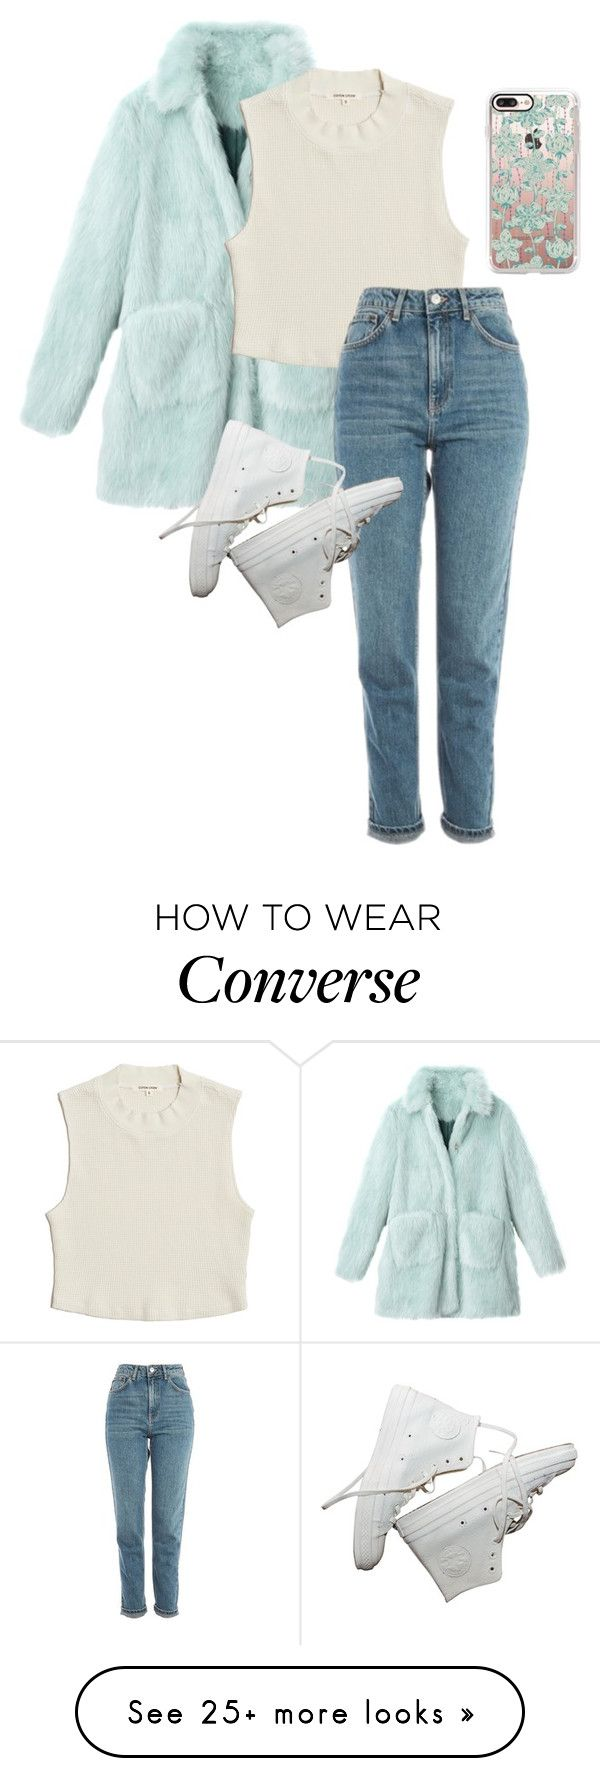 """""""hey hey hey"""" by causelovinghimwas-red on Polyvore featuring Topshop and Casetify"""